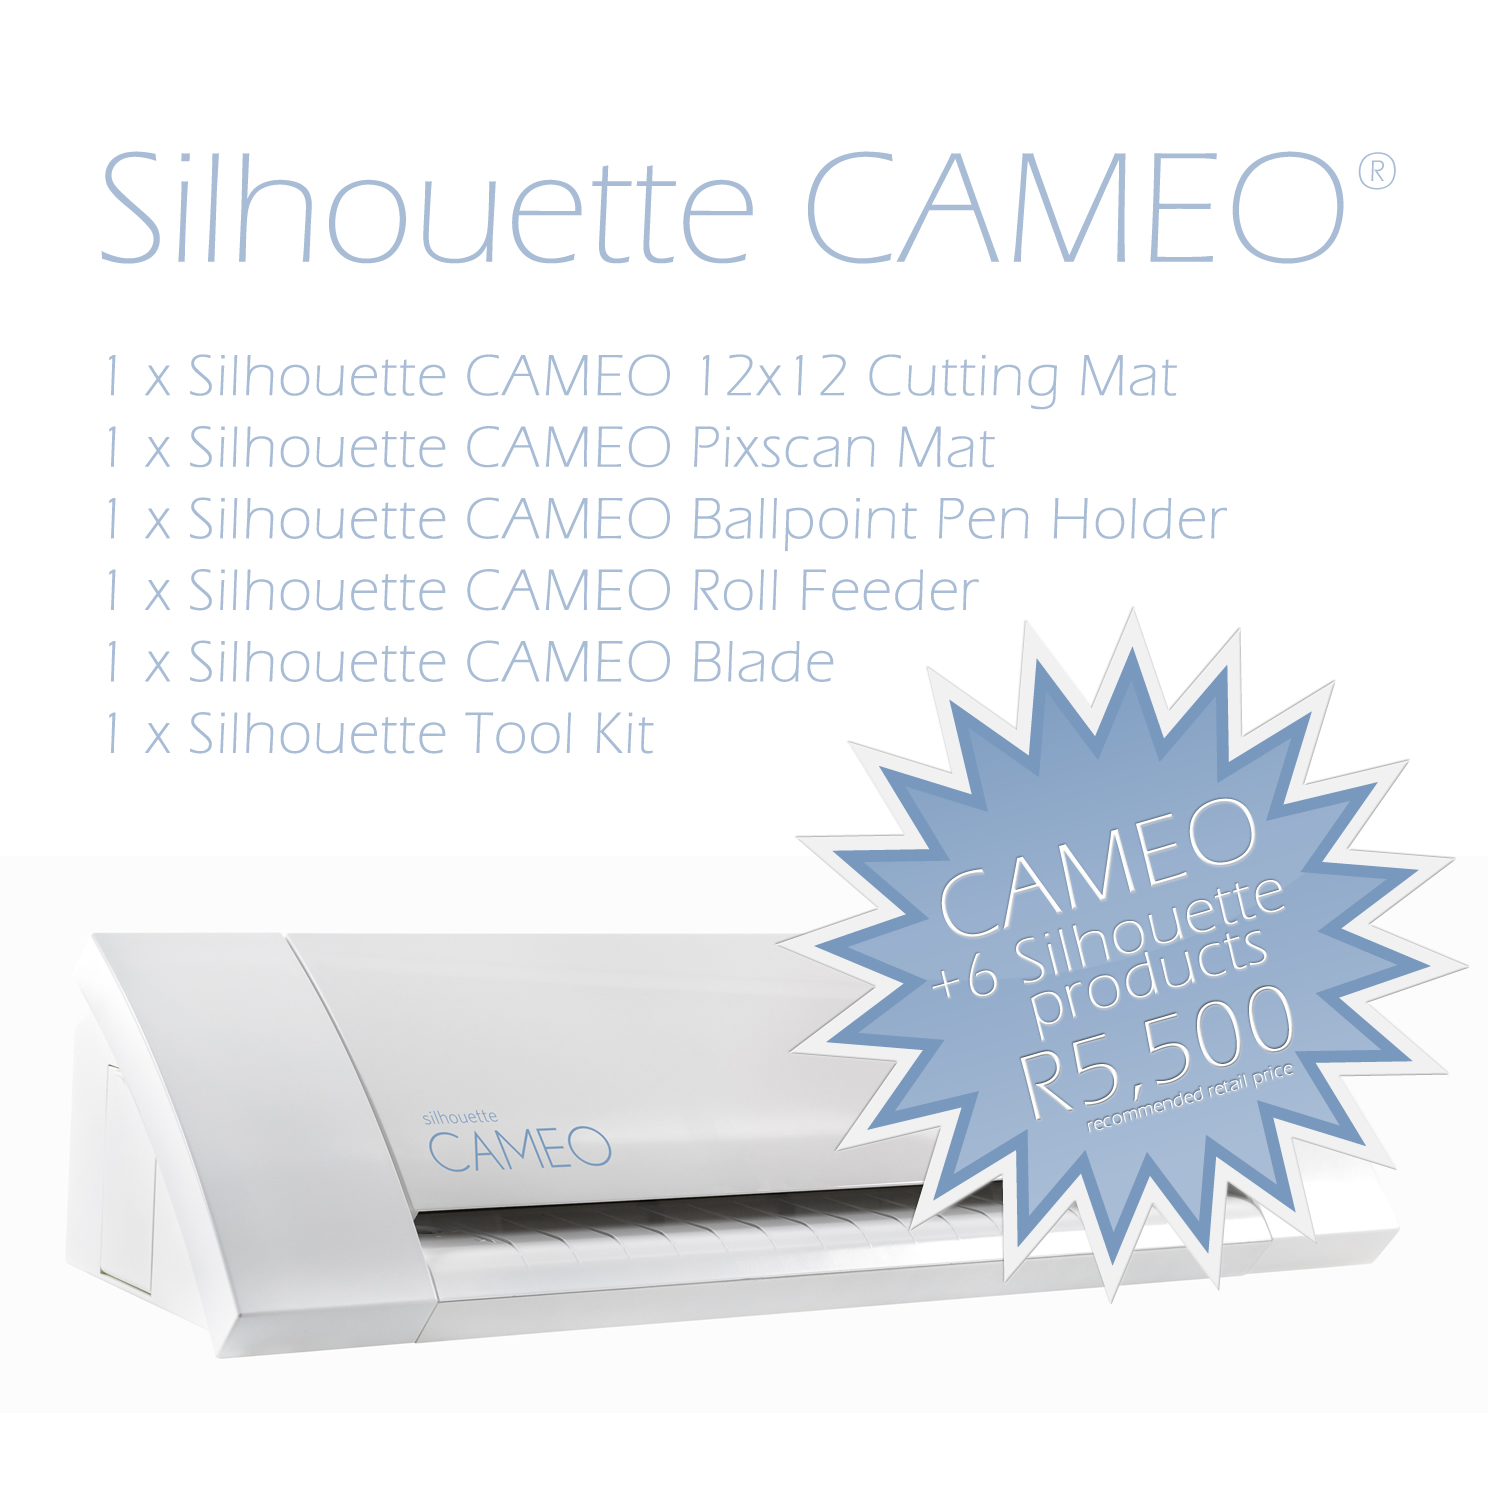 Silhouette-CAMEO-Bundle-Price